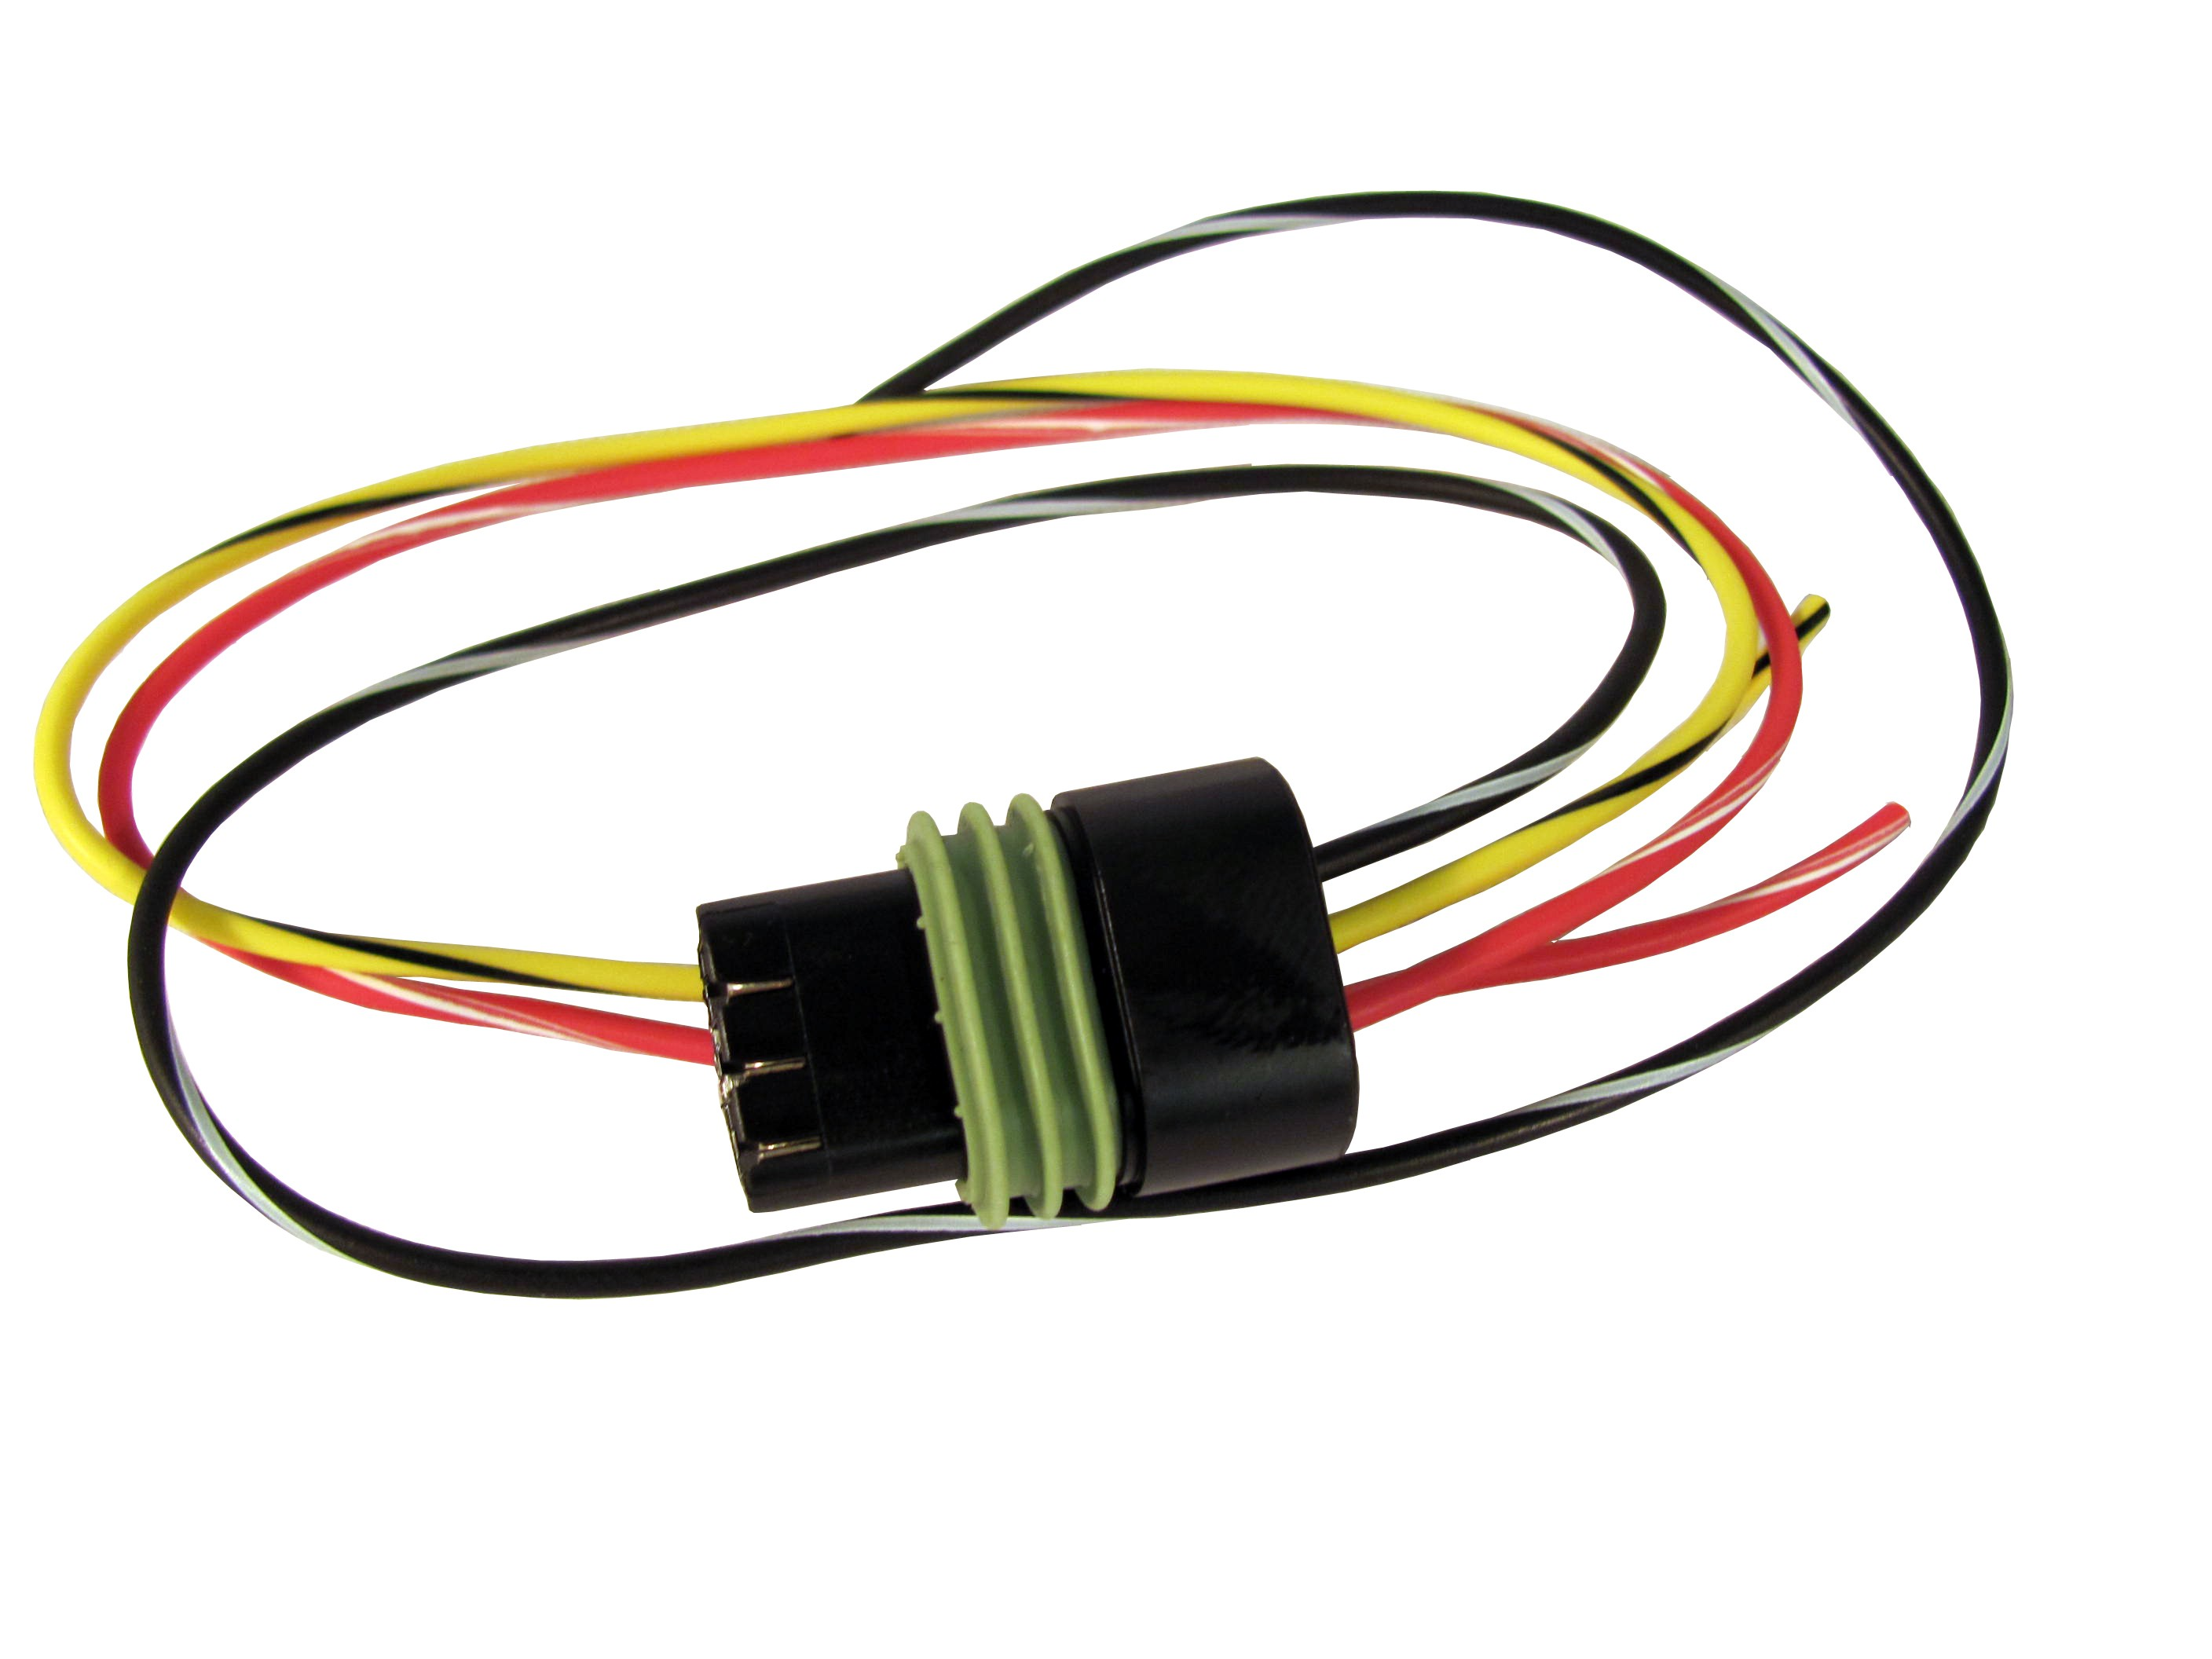 wiring 1989 1998 dodge cummins tps connector pigtail rh dieselconversion com Automotive Wiring Connectors Assortment Electrical Outlet Wiring Diagram